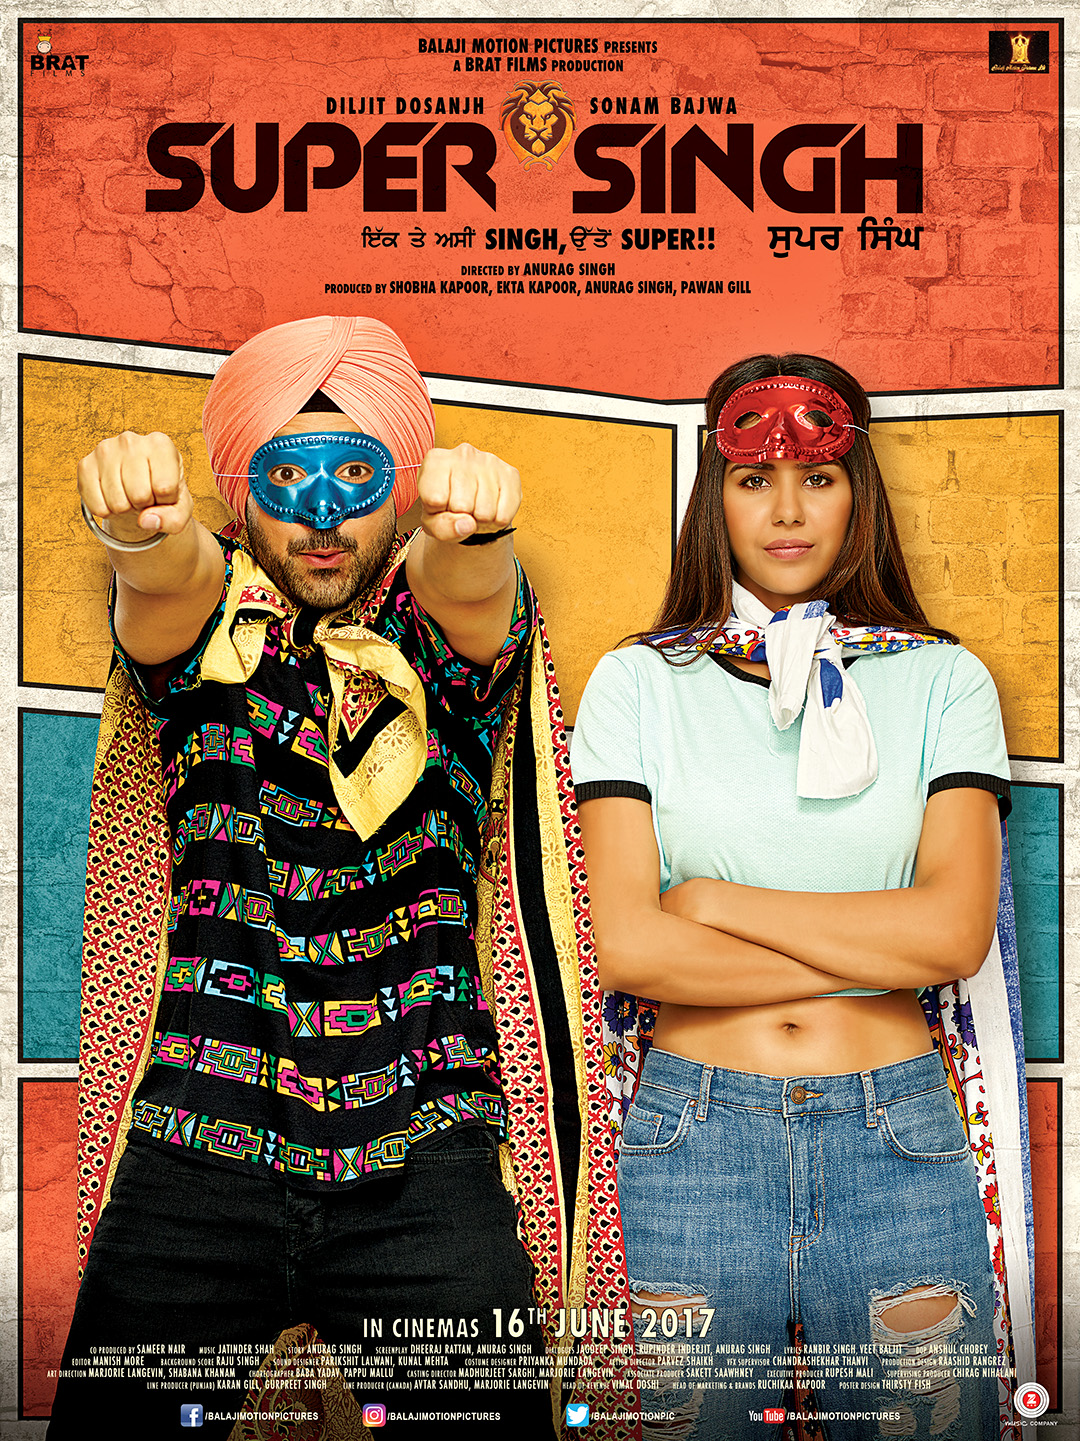 Super singh punjabi movie download in hd quality